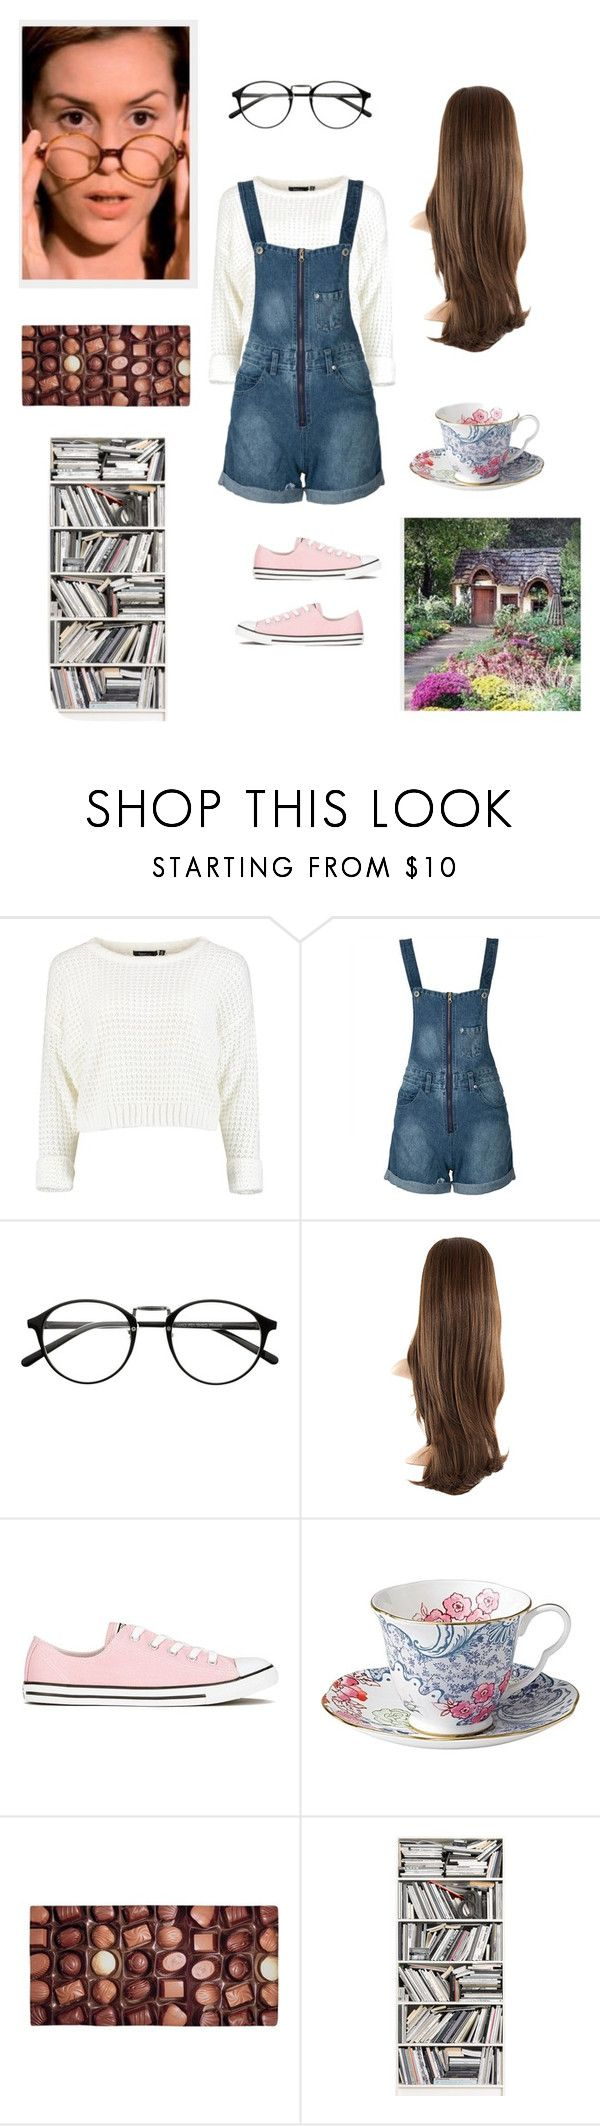 """""""Ms.Honey from Matilda"""" by aribear12 ❤ liked on Polyvore featuring WithChic, Converse and Brewster Home Fashions"""